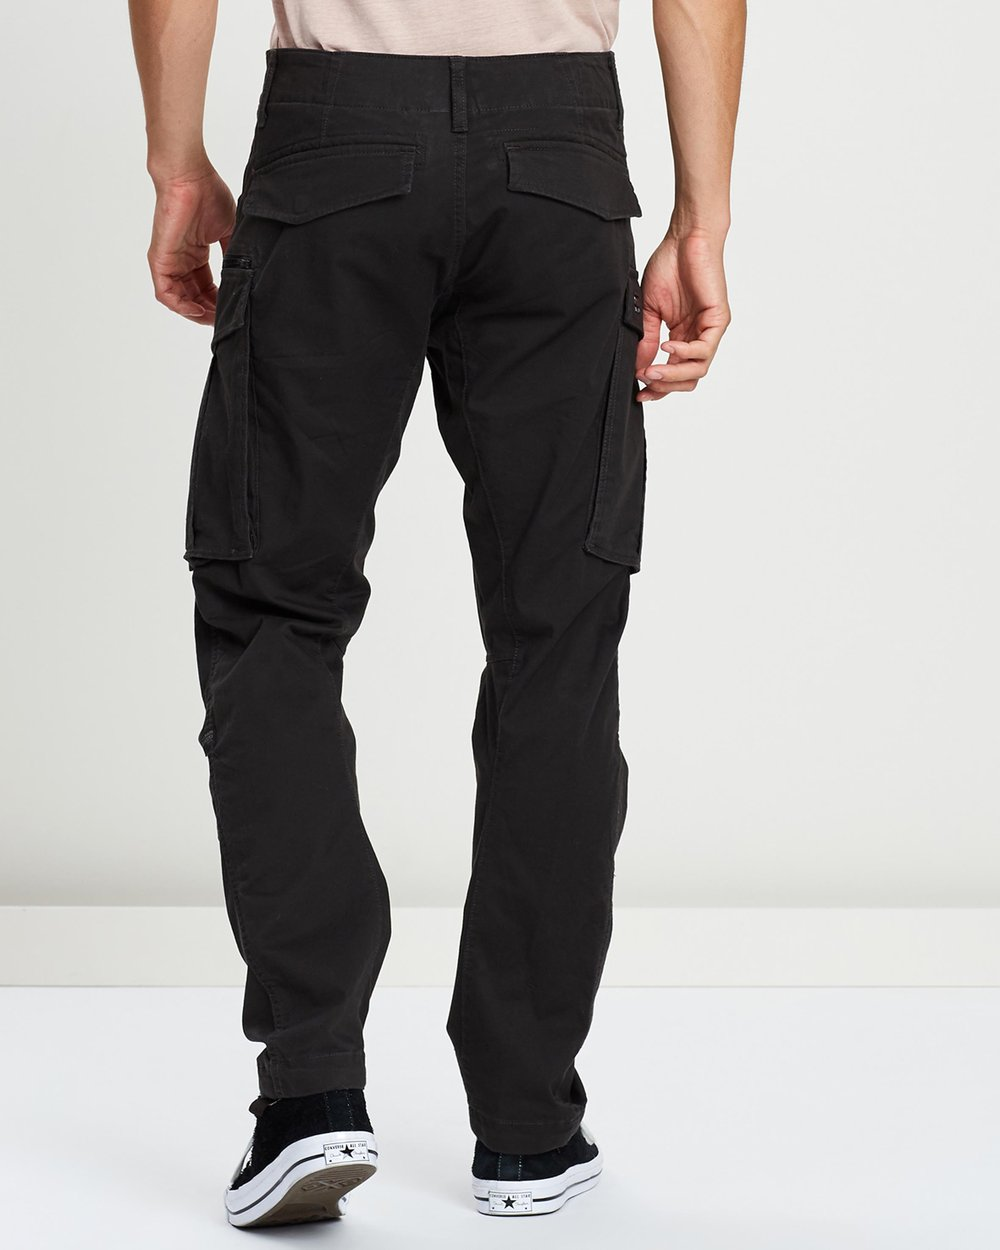 5b54e4de2b7 Rovic Zip 3D Tapered Pants by G-Star RAW Online | THE ICONIC | Australia